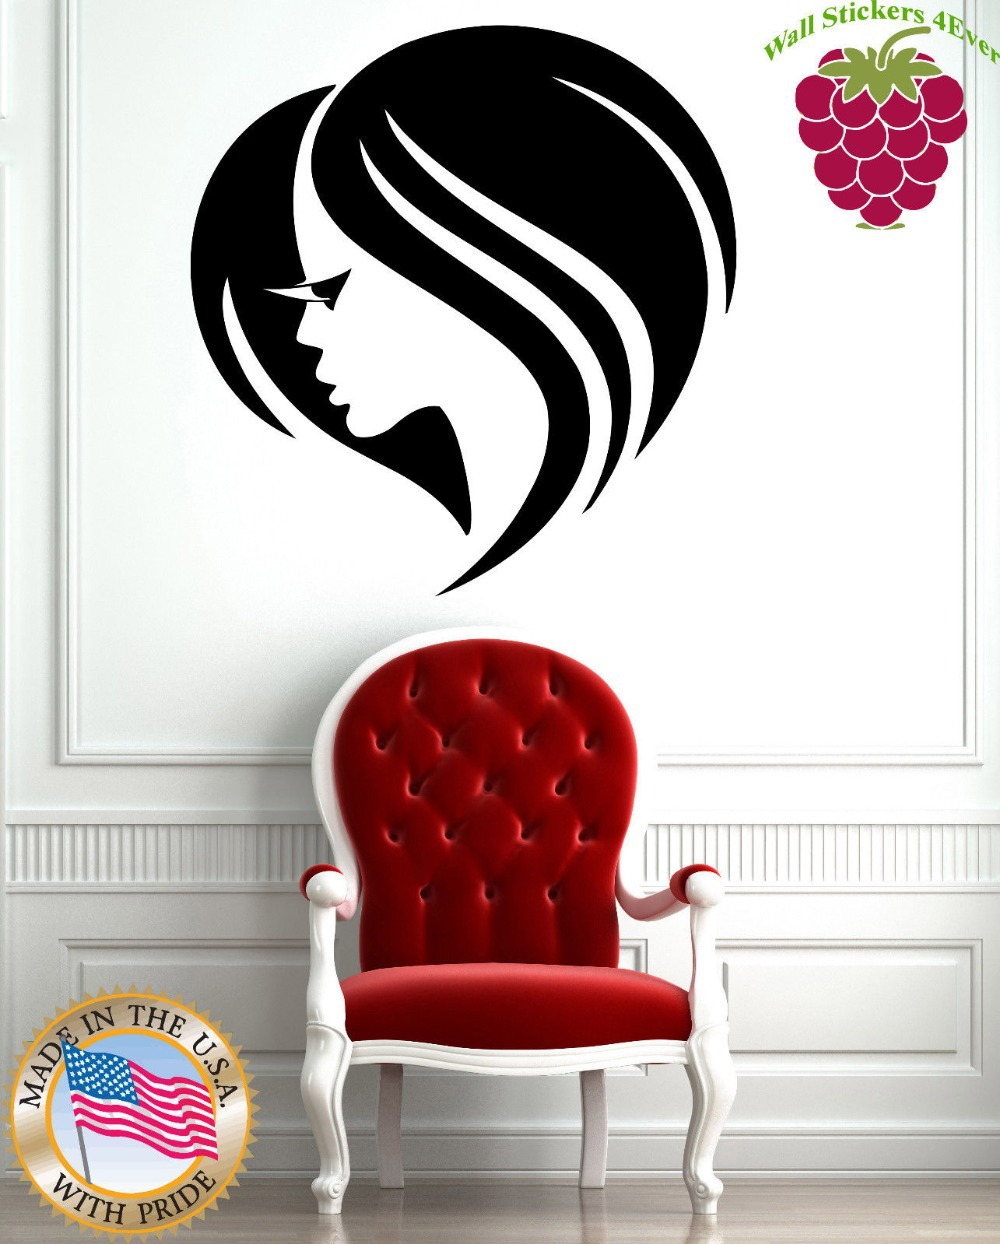 Aliexpress buy beauty hair salon wall stickers vinyl decal aliexpress buy beauty hair salon wall stickers vinyl decal cute girl face eye lashes from reliable beauty hair salon suppliers on mirage store amipublicfo Images